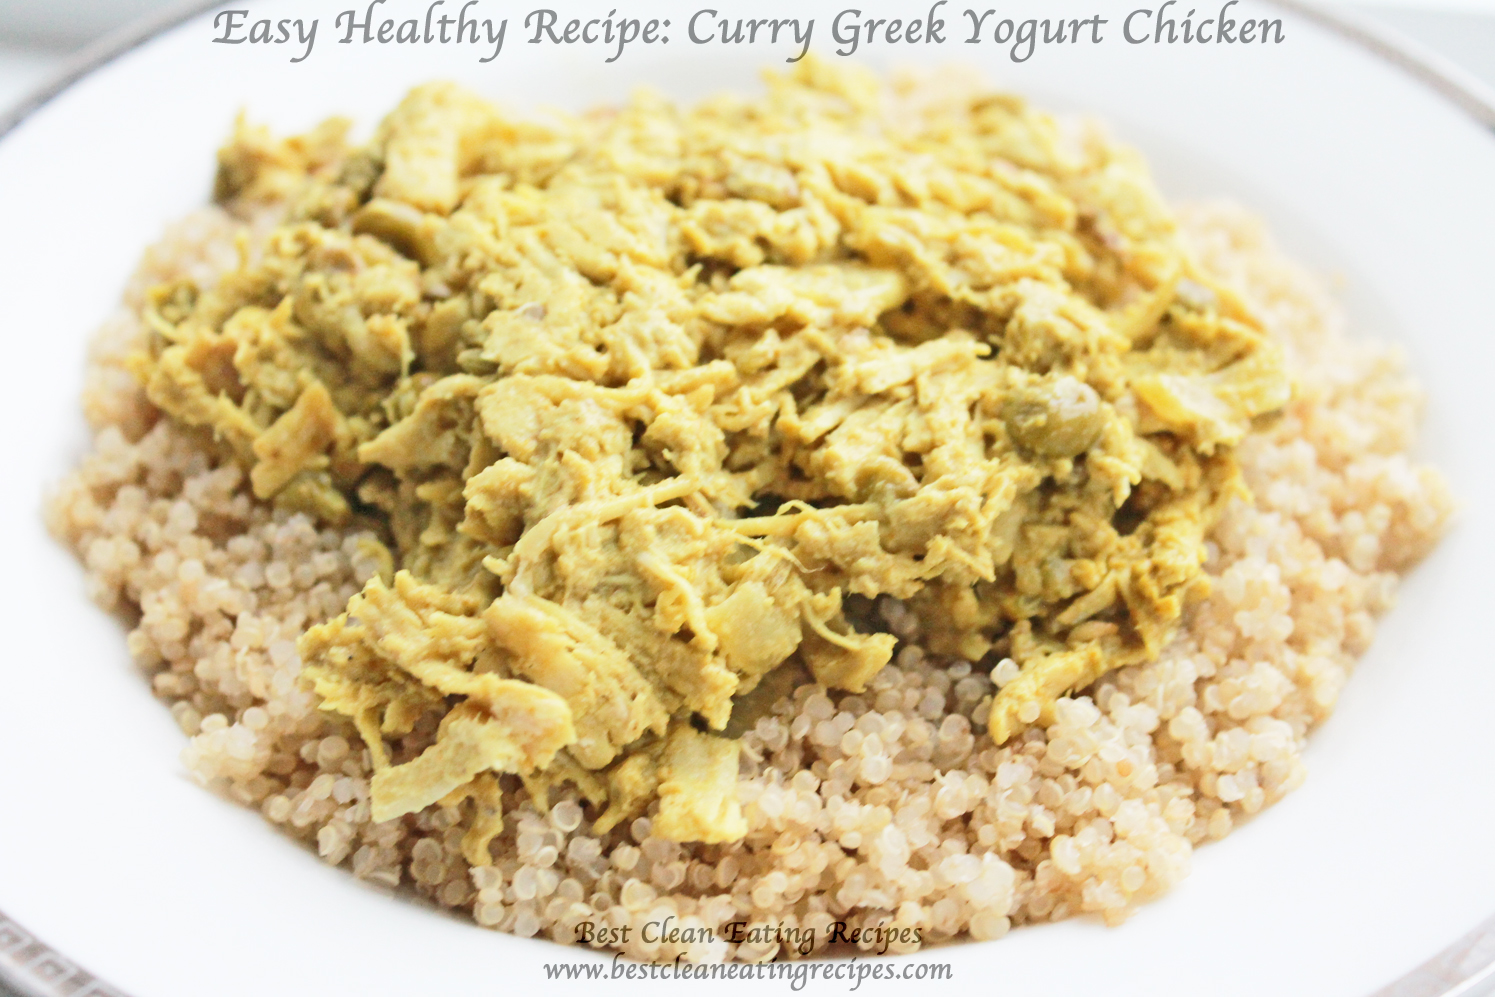 Healthy Meal for Clean Eating: Curry Greek Yogurt Chicken